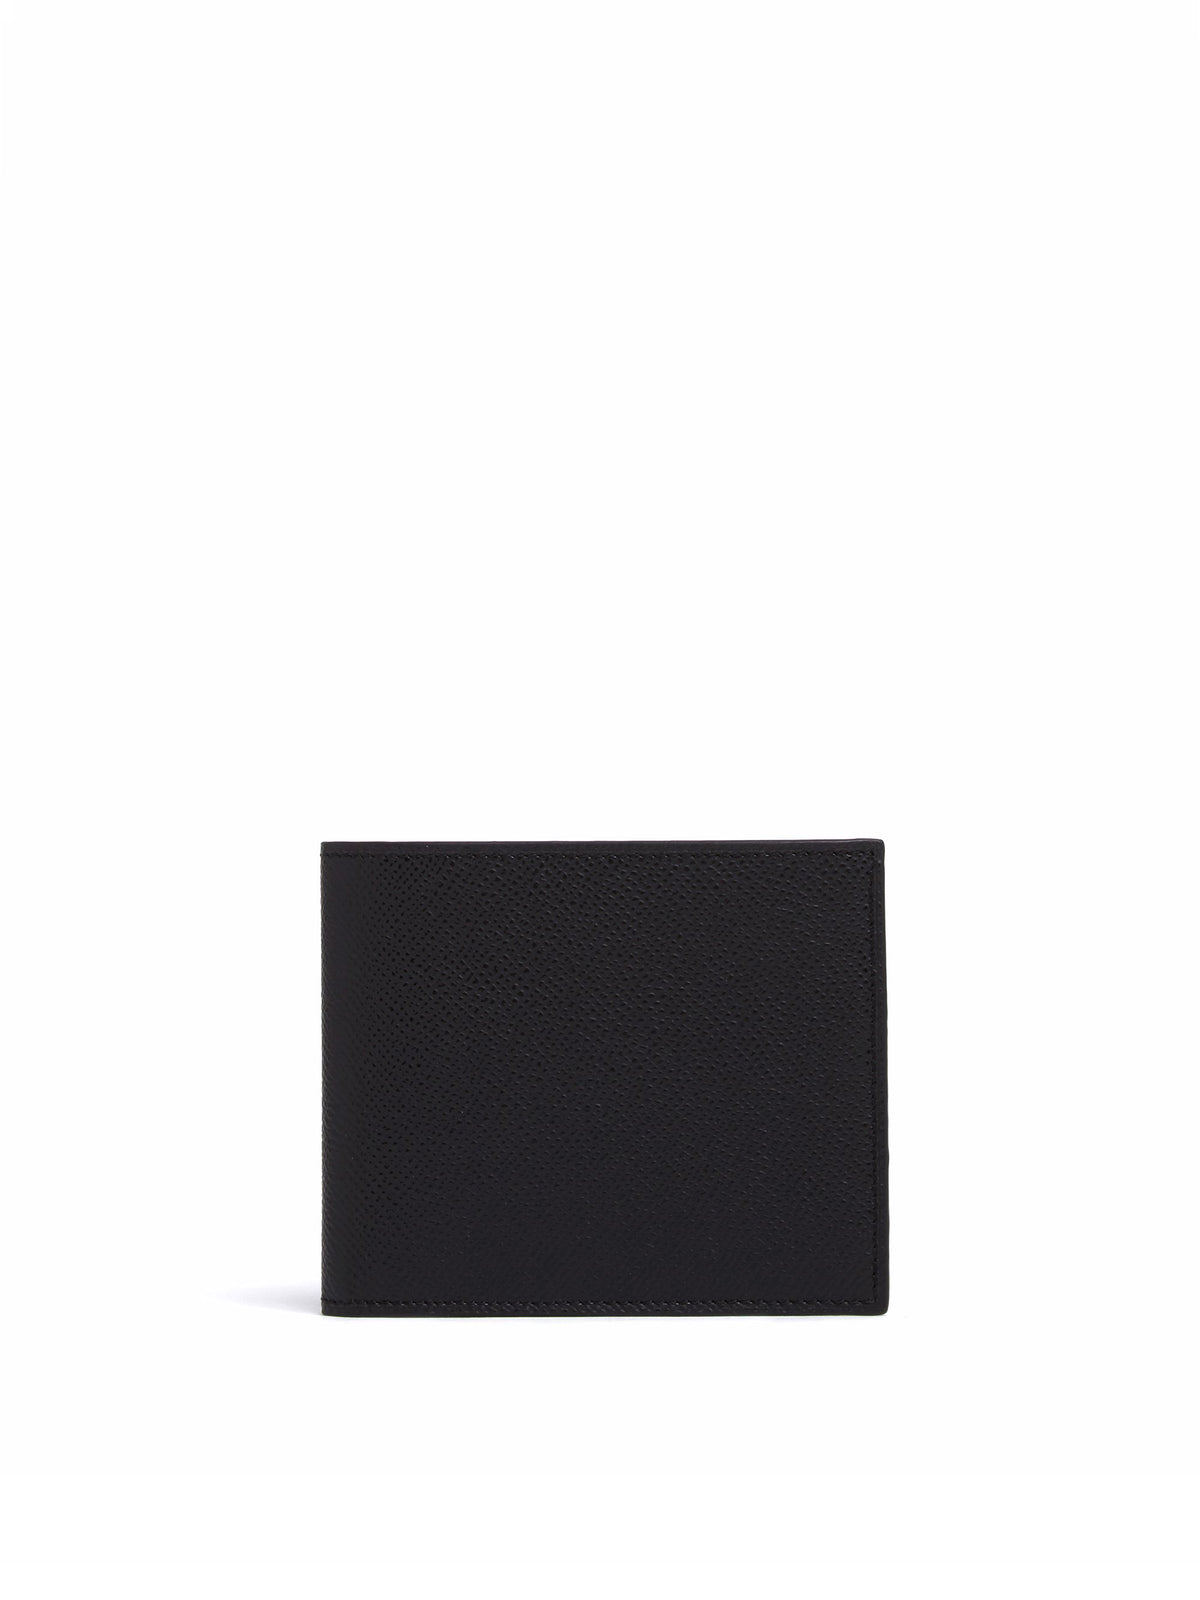 Mark Cross Bi-Fold Leather Wallet Saffiano Black Front